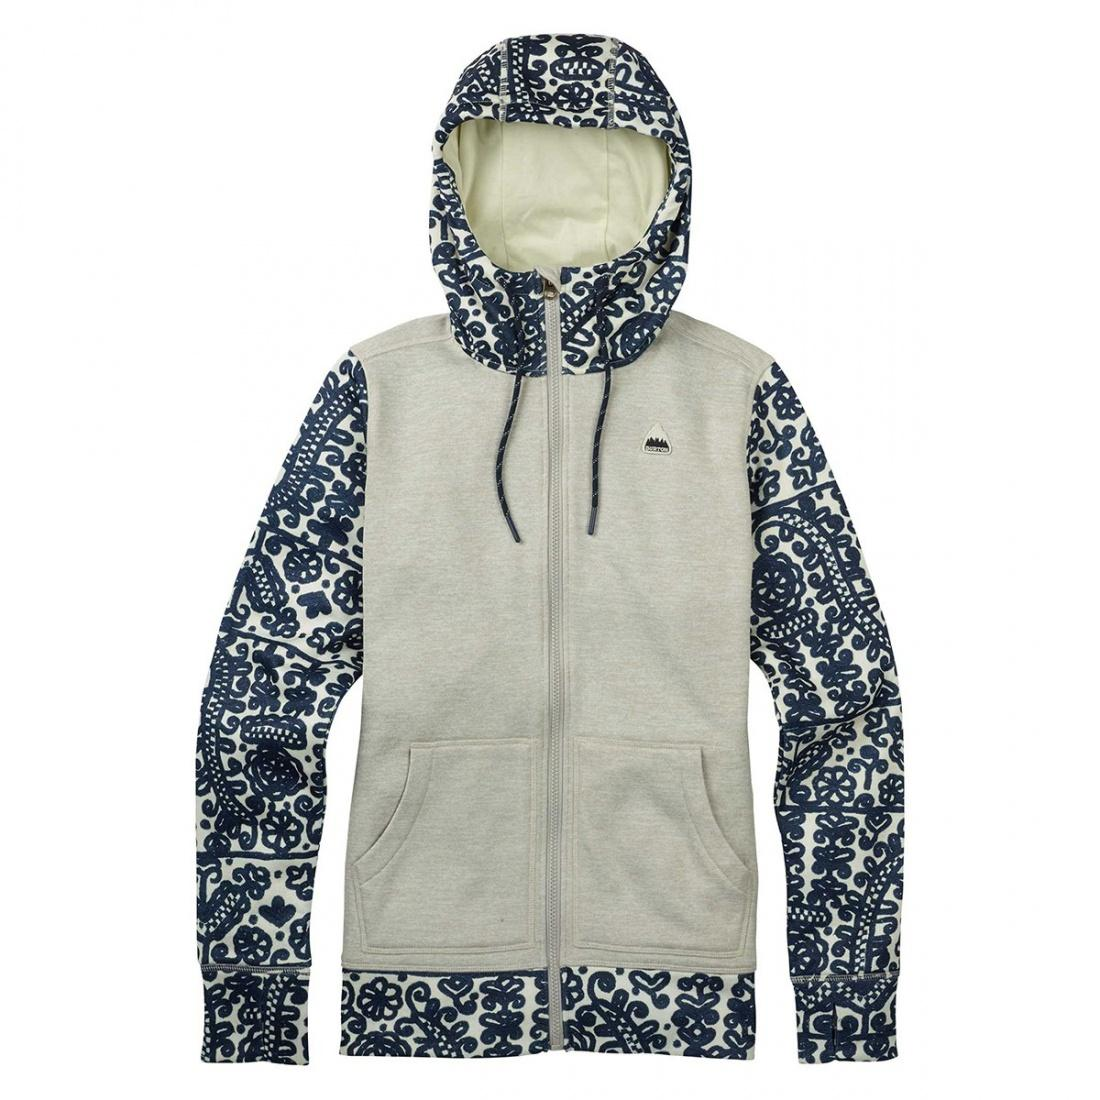 Burton Толстовка Burton Quartz Full-Zip Dove Heather, , , FW18 S цены онлайн